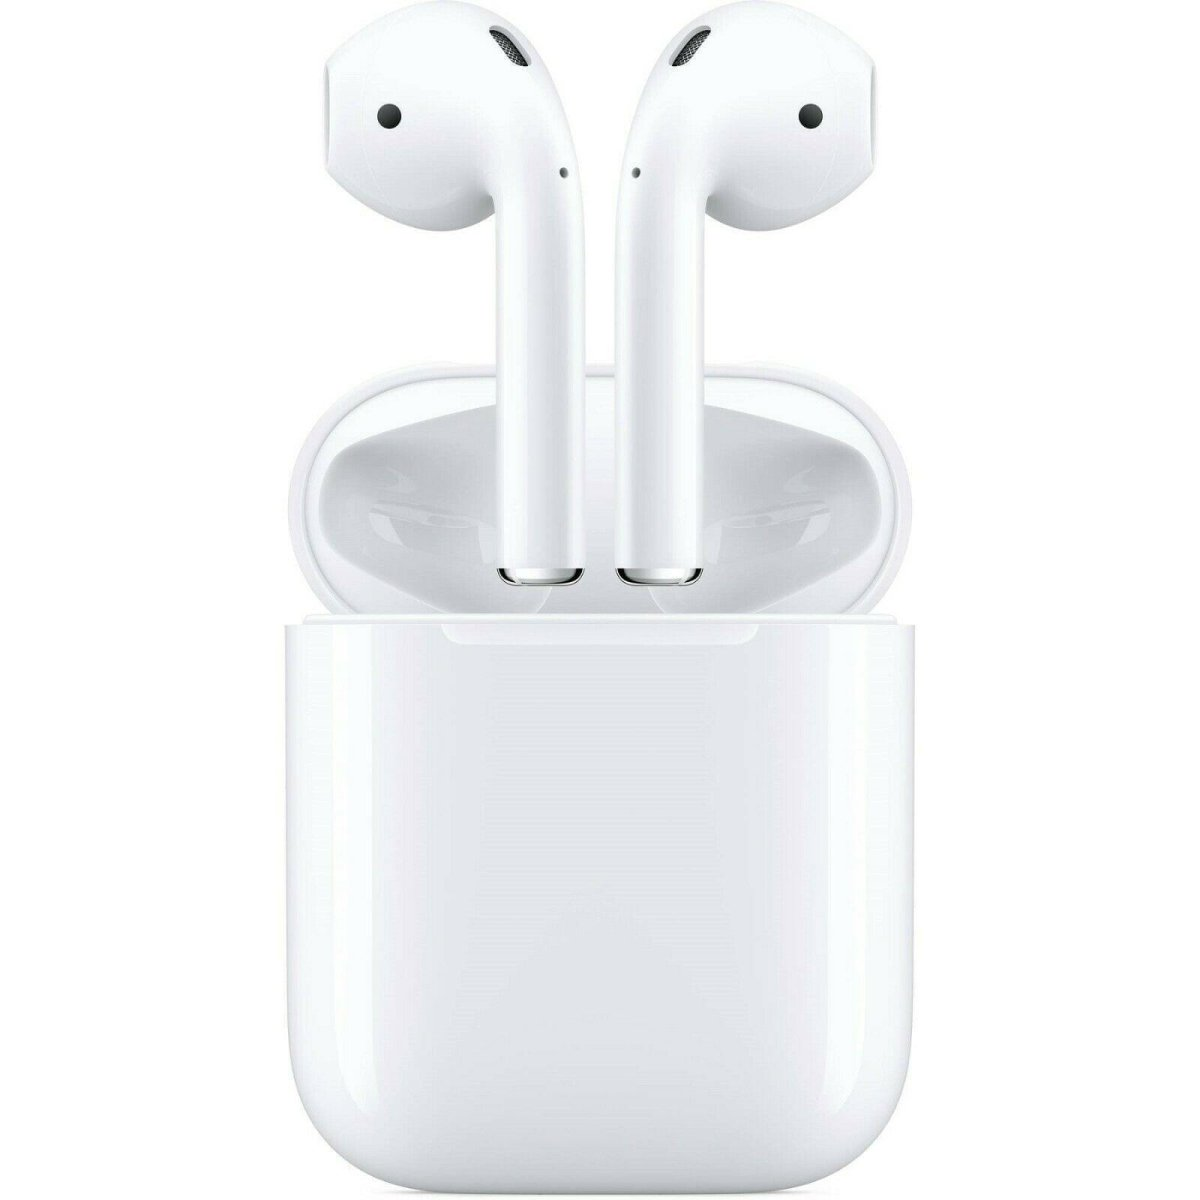 2nd Generation Apple Airpods - Fix Or Cell Now Device Shop